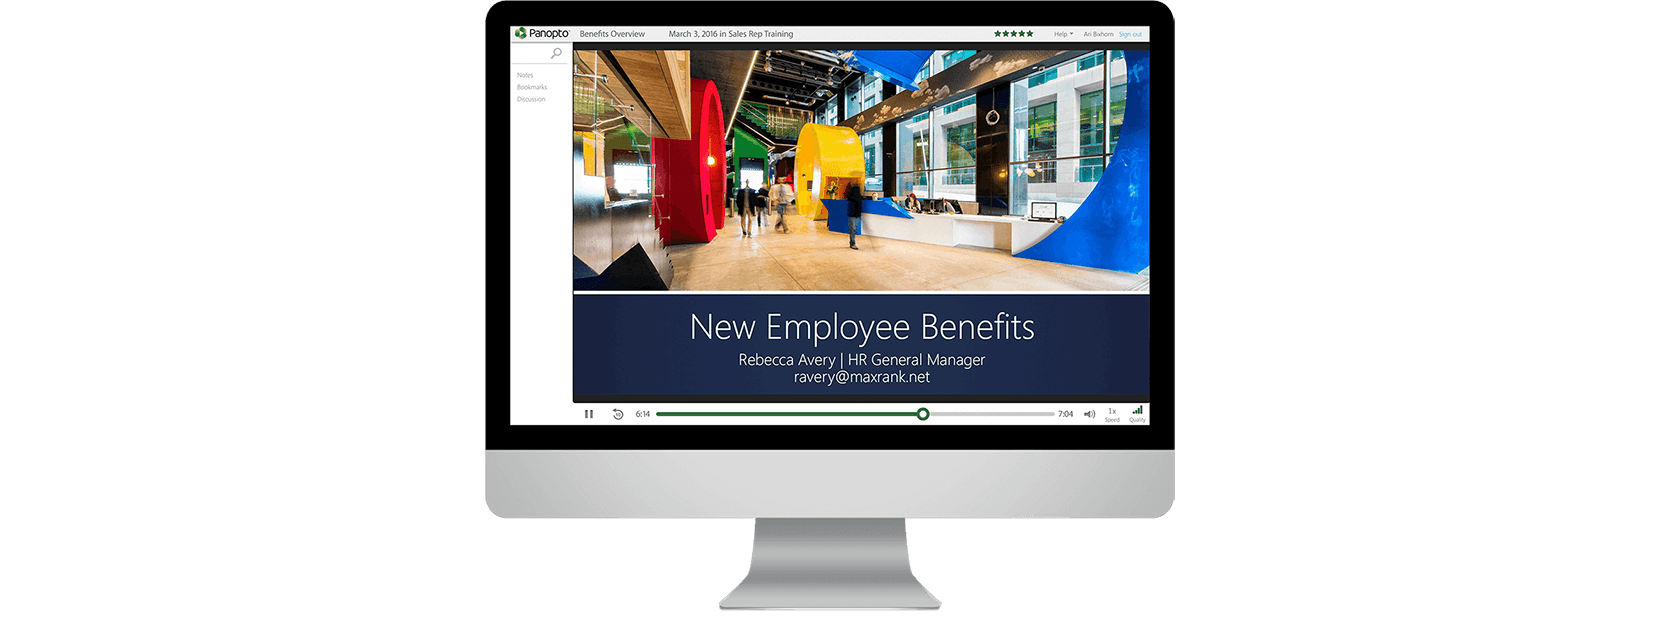 Video recording software for employee oboarding